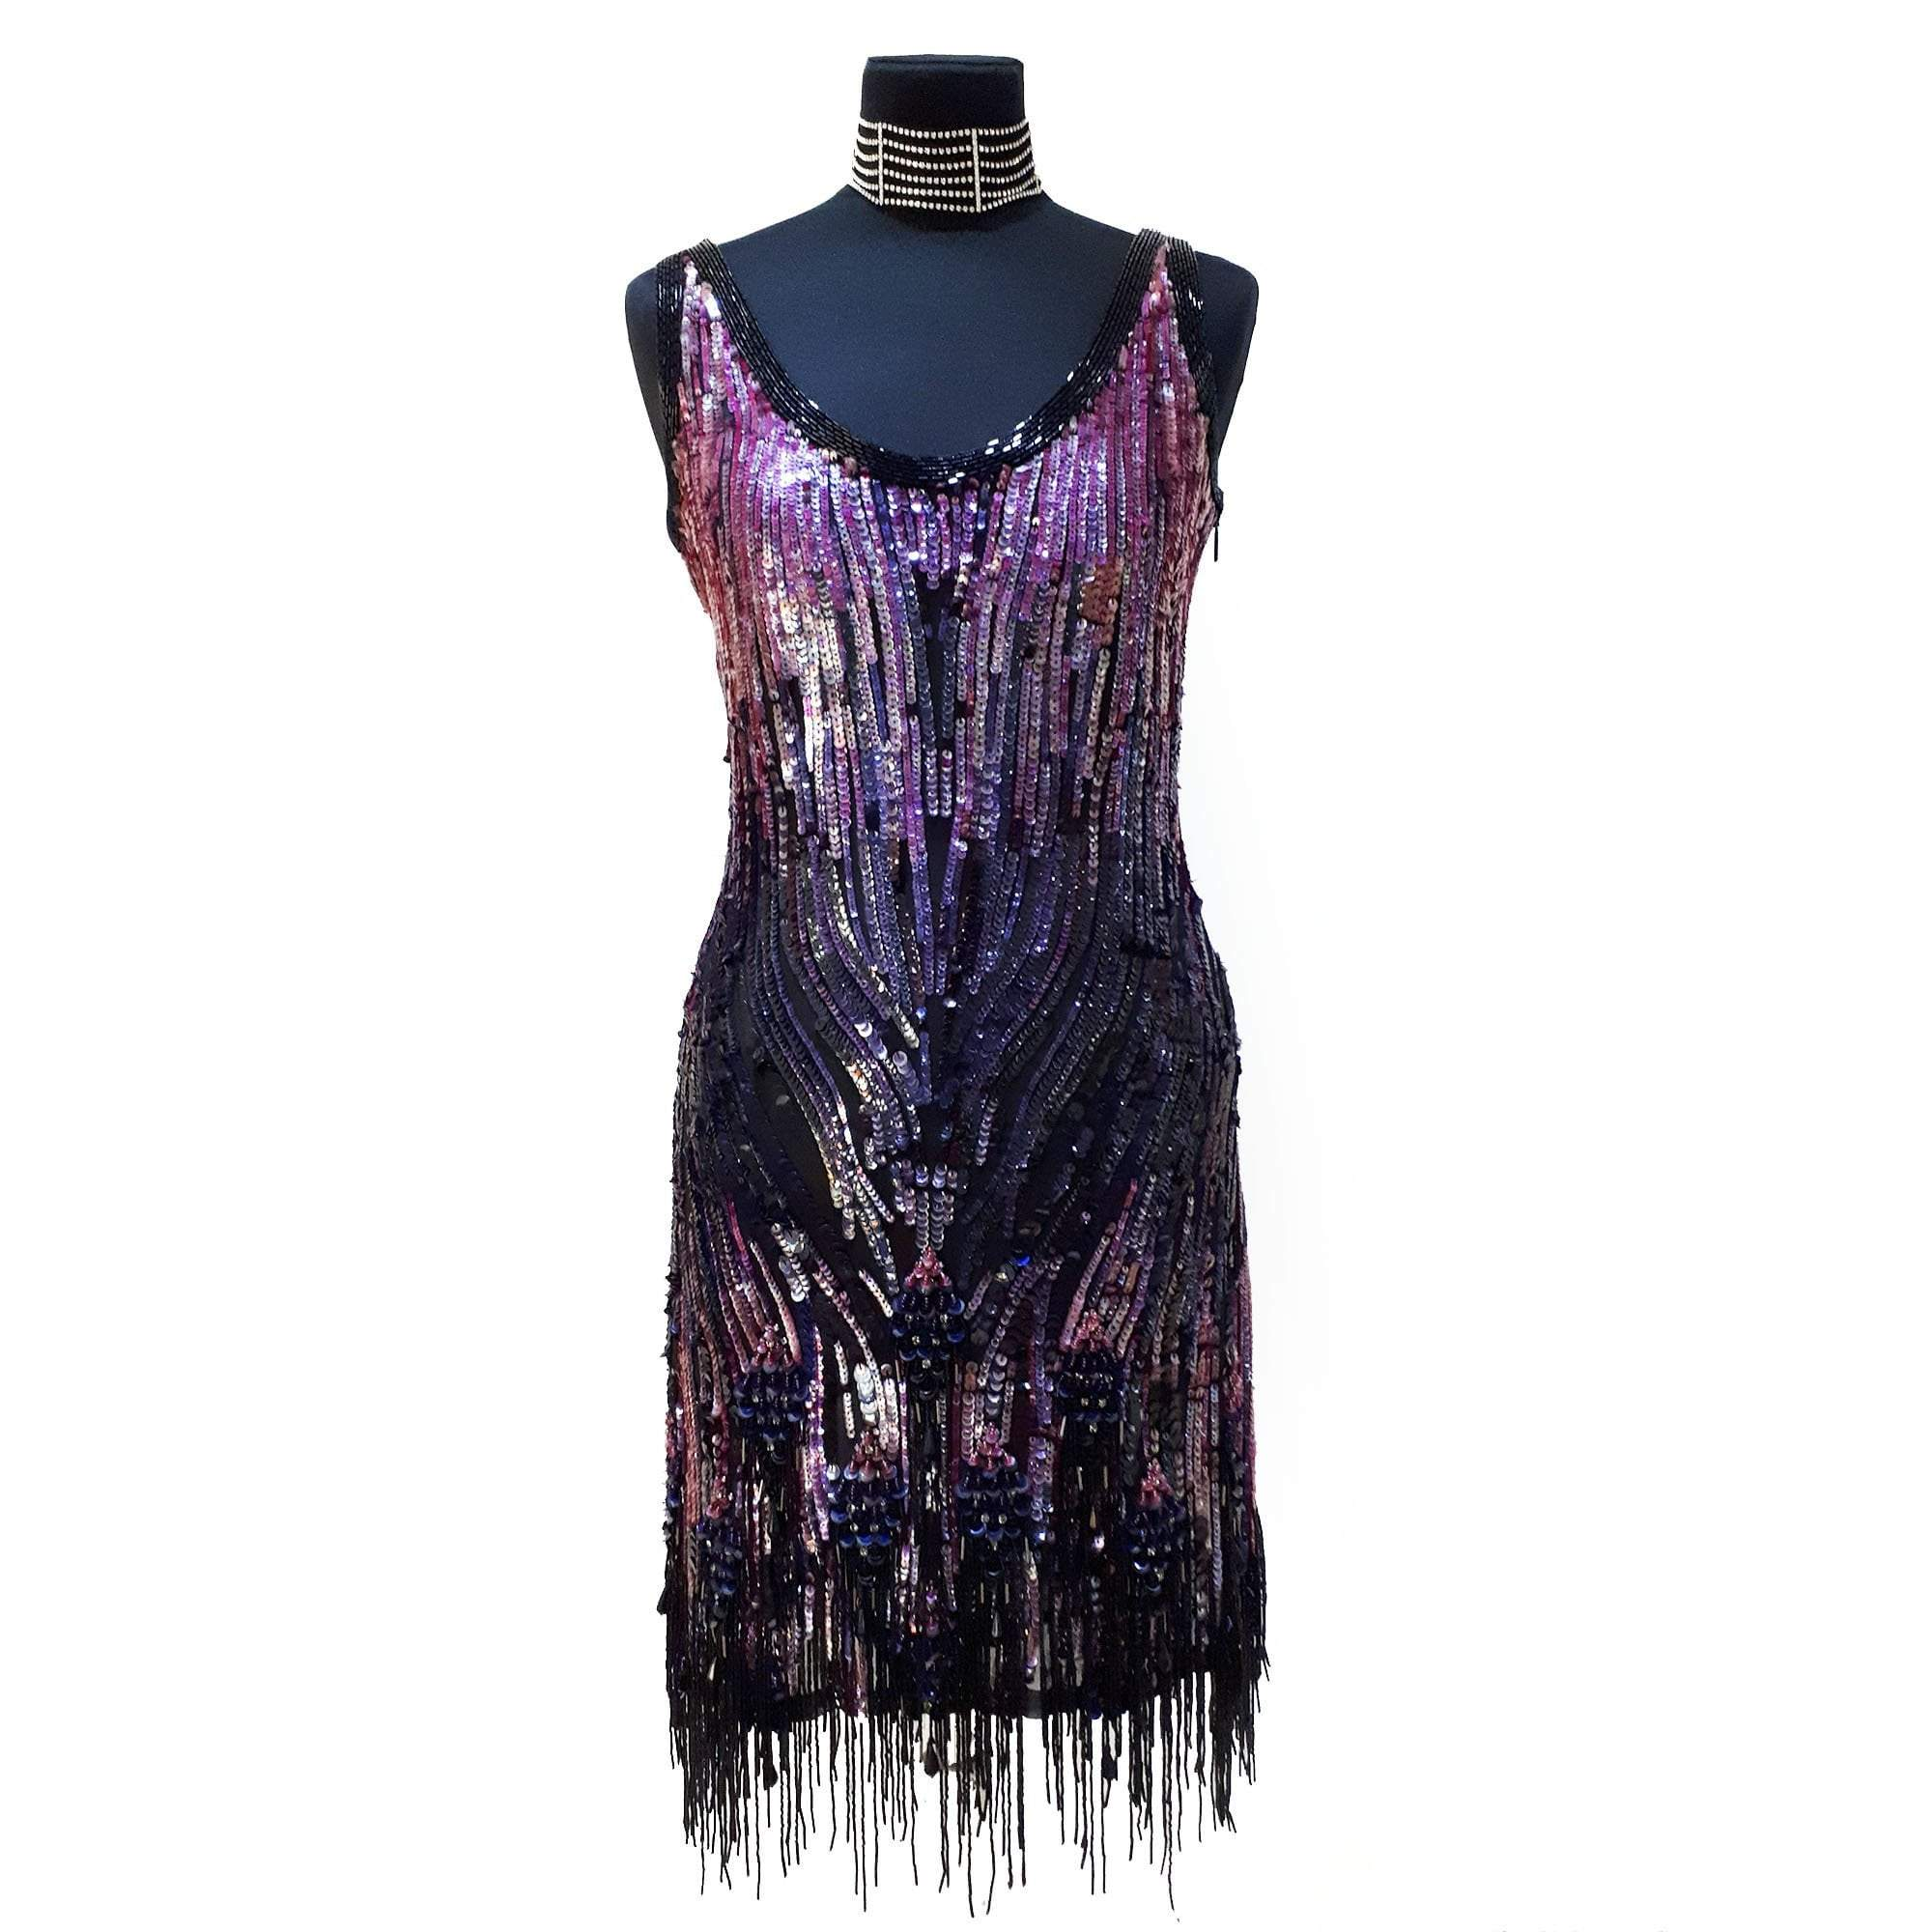 4ce61375 Roberto Cavalli Sequin Fringe Purple and Black Dress – Garderobe